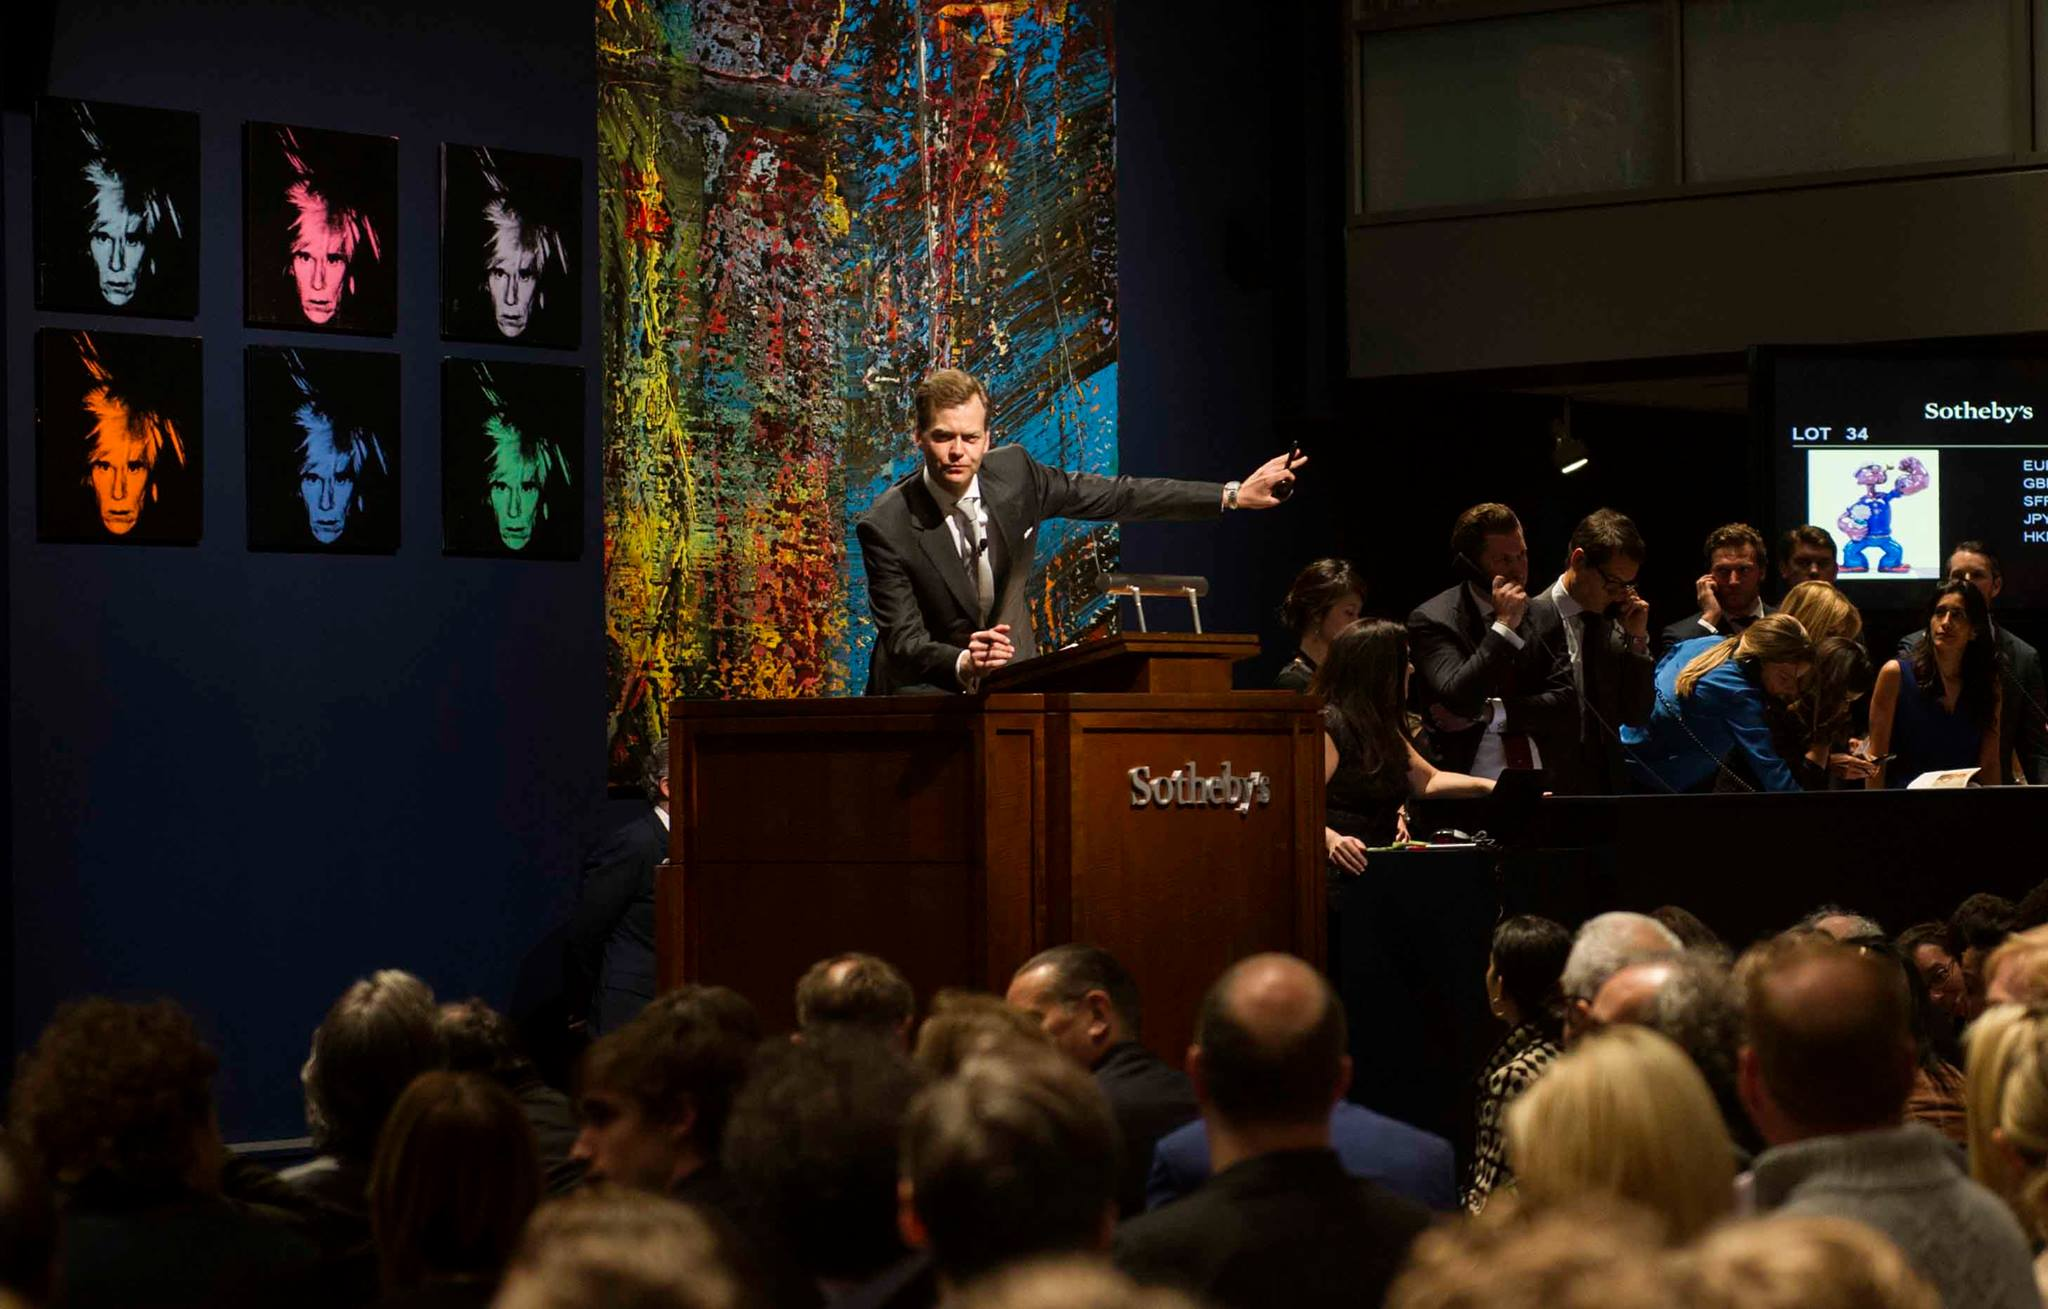 Fine Art Meets Big Business at Sotheby's